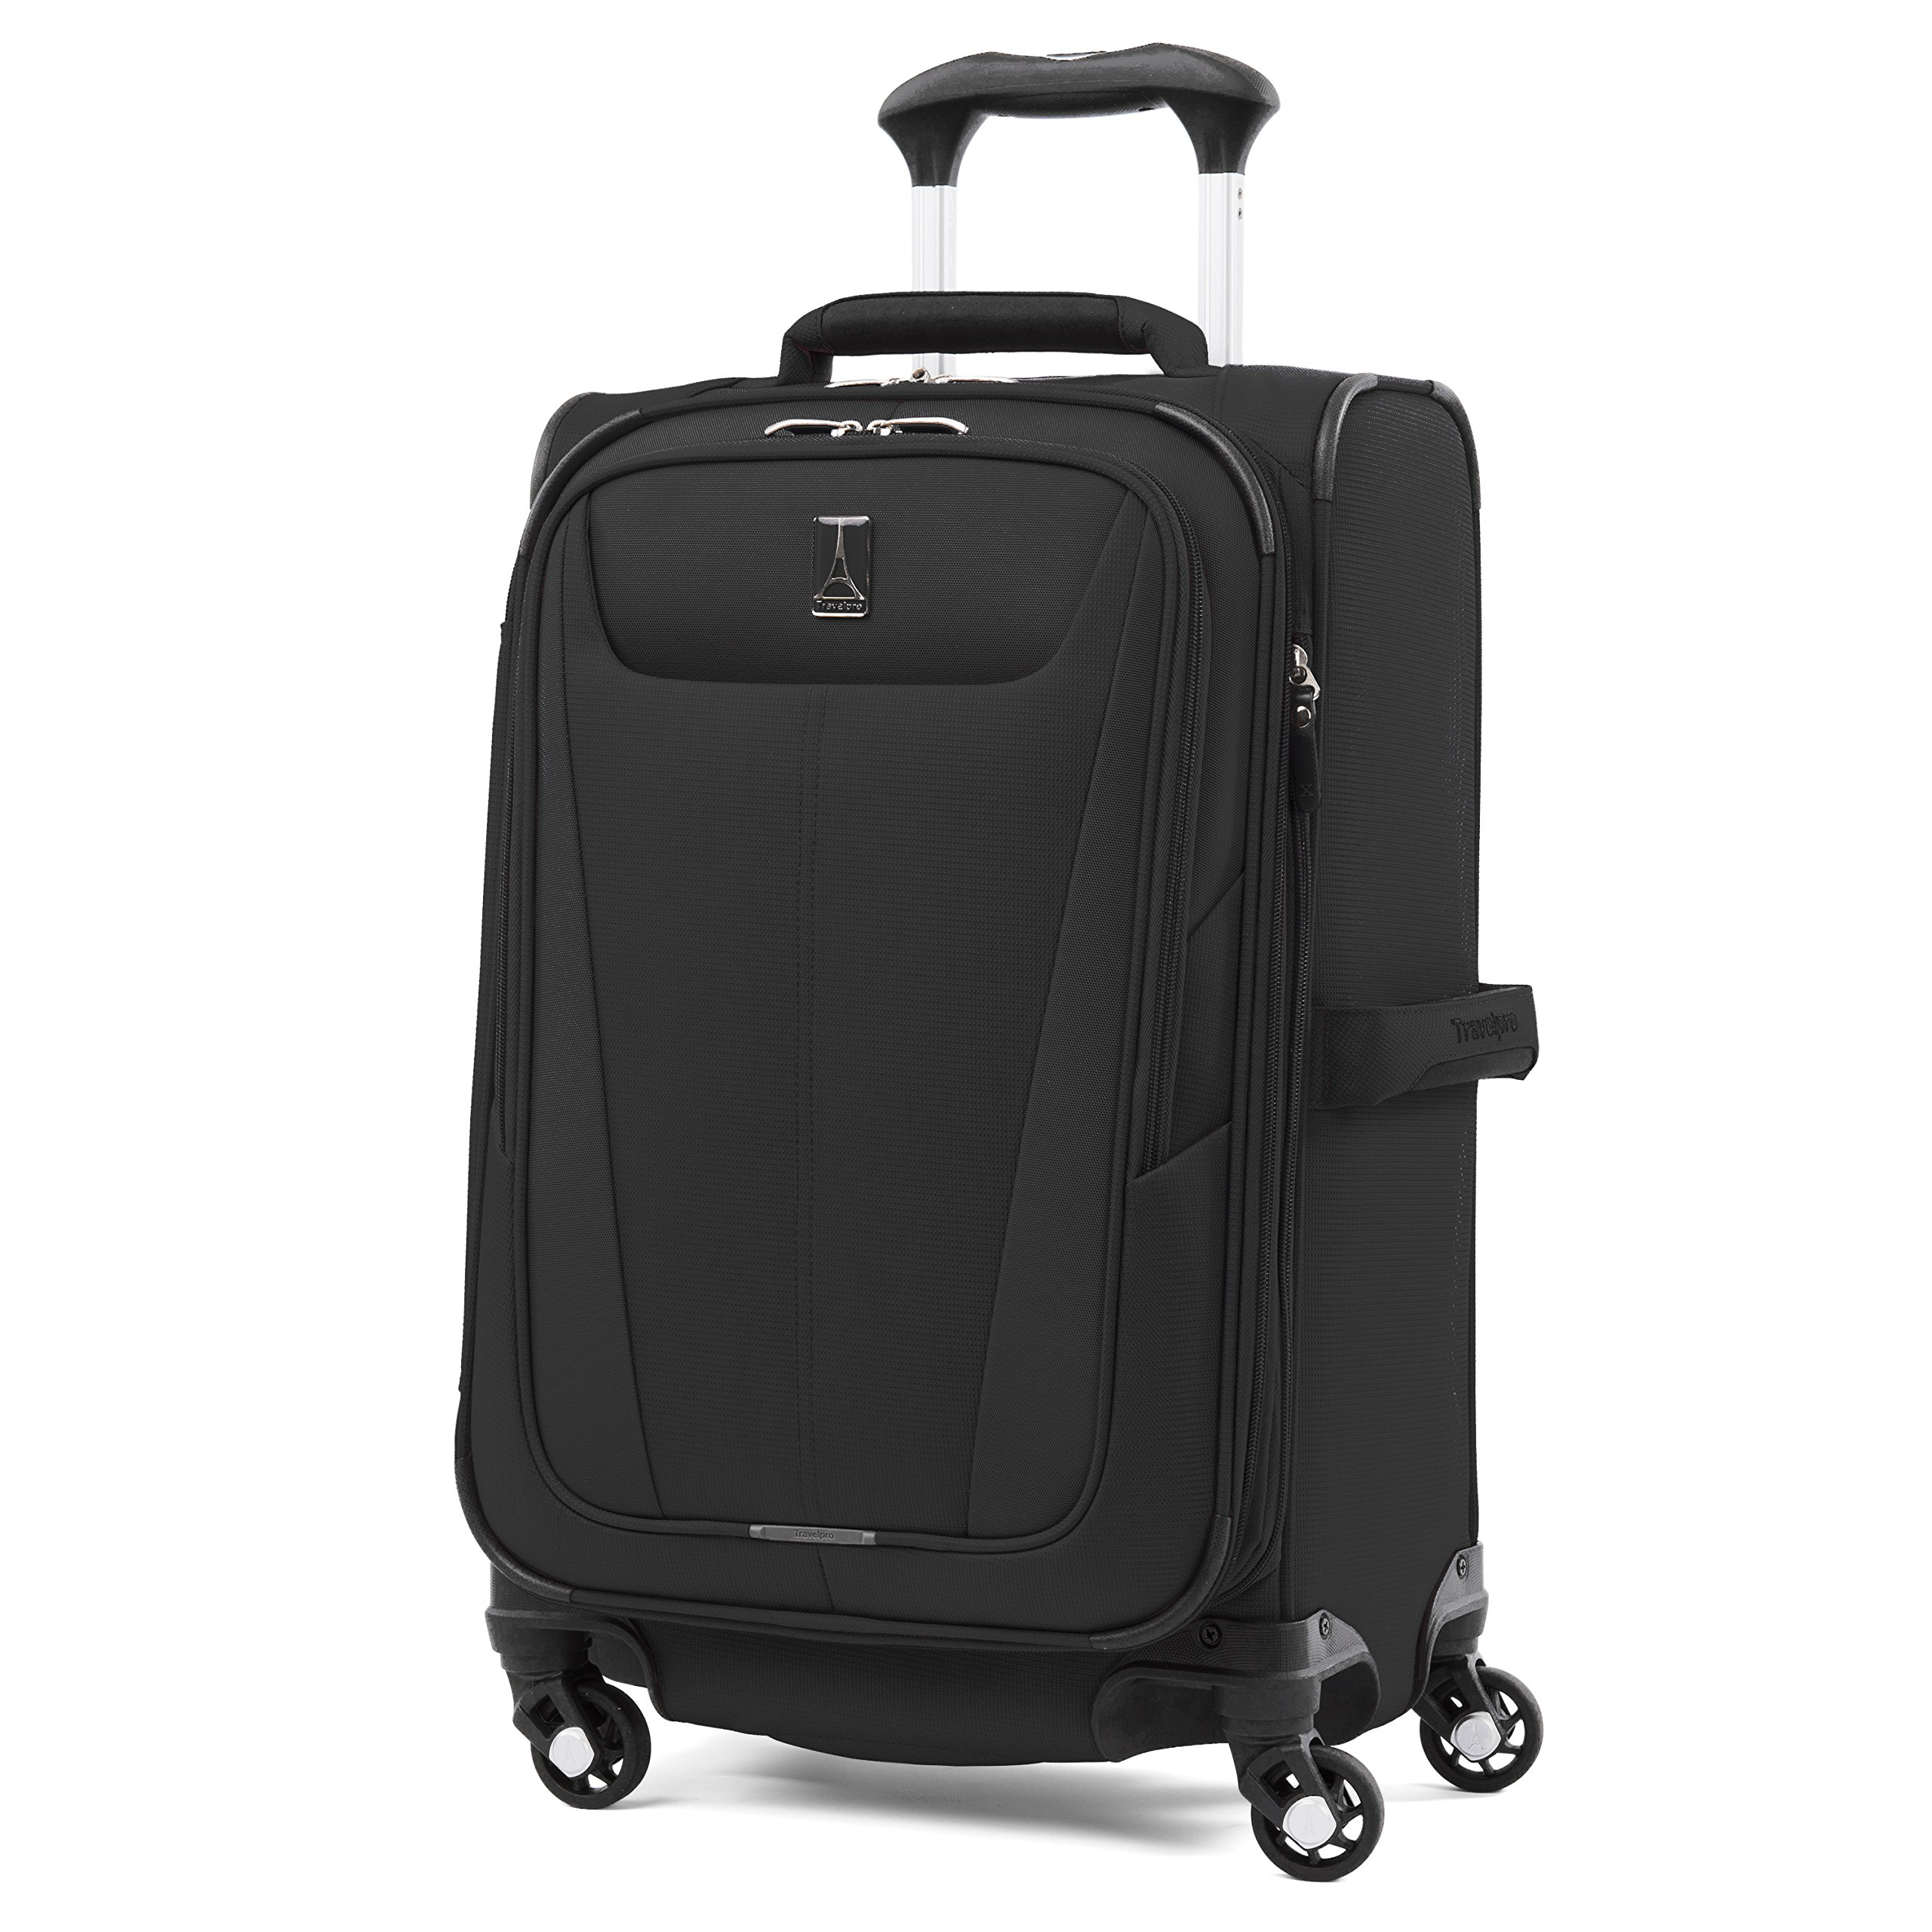 Travelpro Maxlite 5 21'' Expandable Carry-on Spinner Suitcase, Black